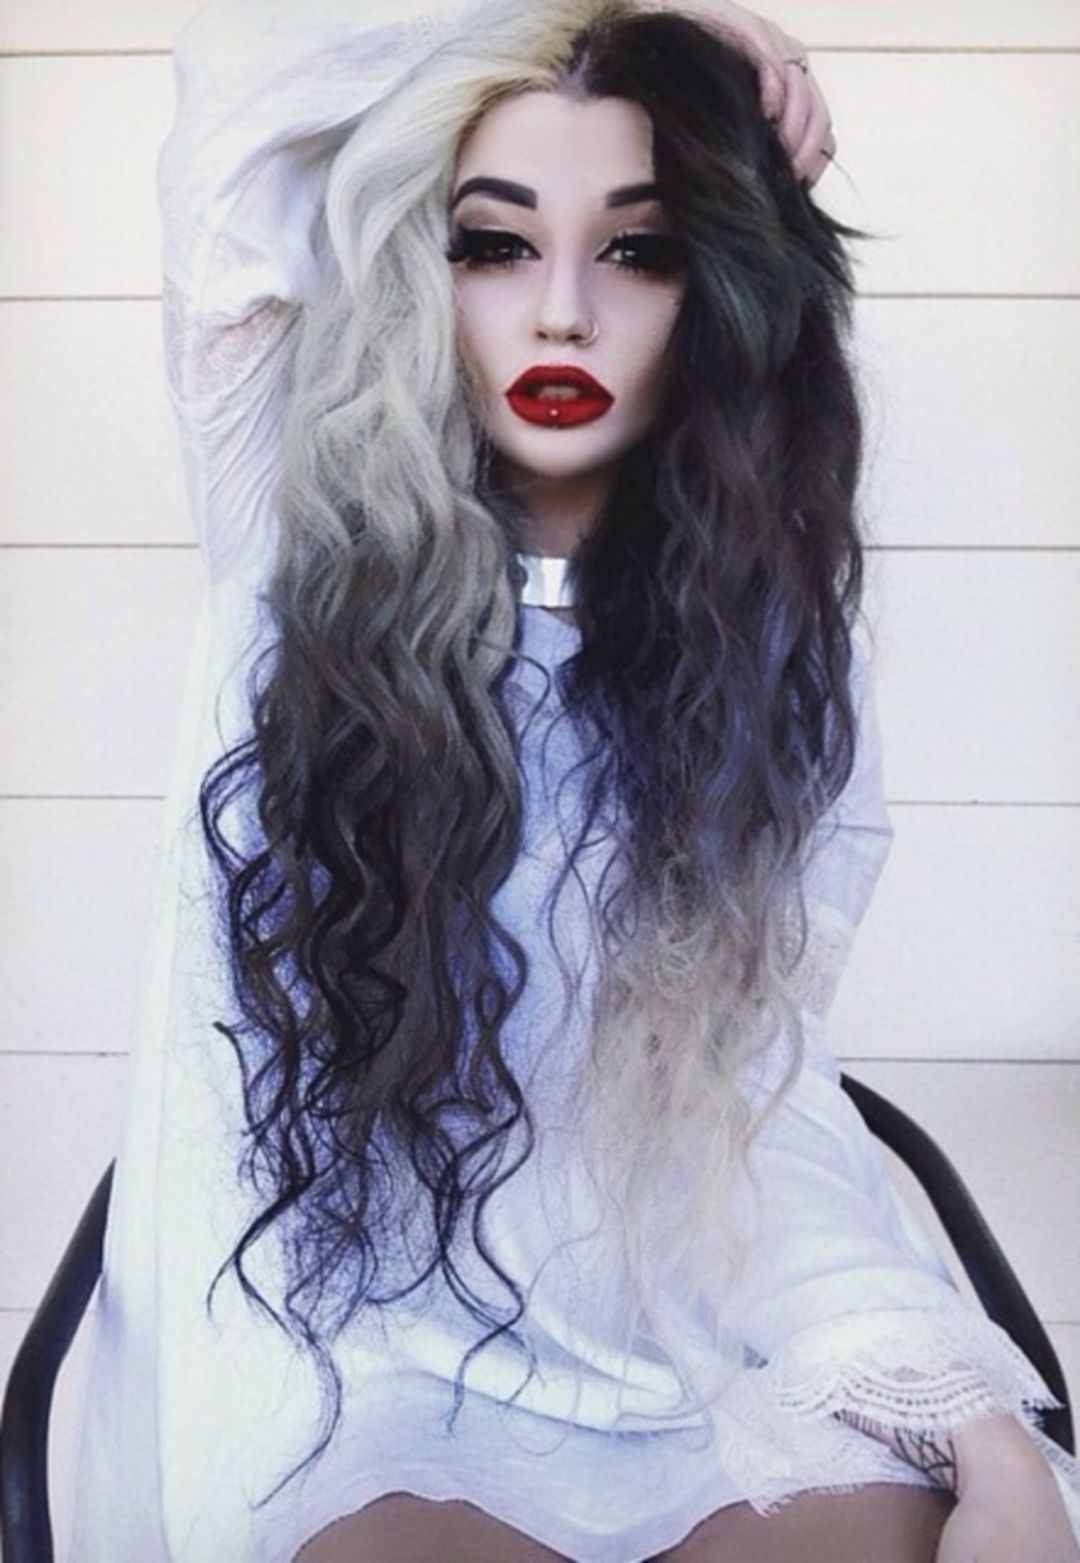 35 Unique Half And Half Hair Color Ideas For Cute Women With Images Half And Half Hair Scene Hair Hair Styles